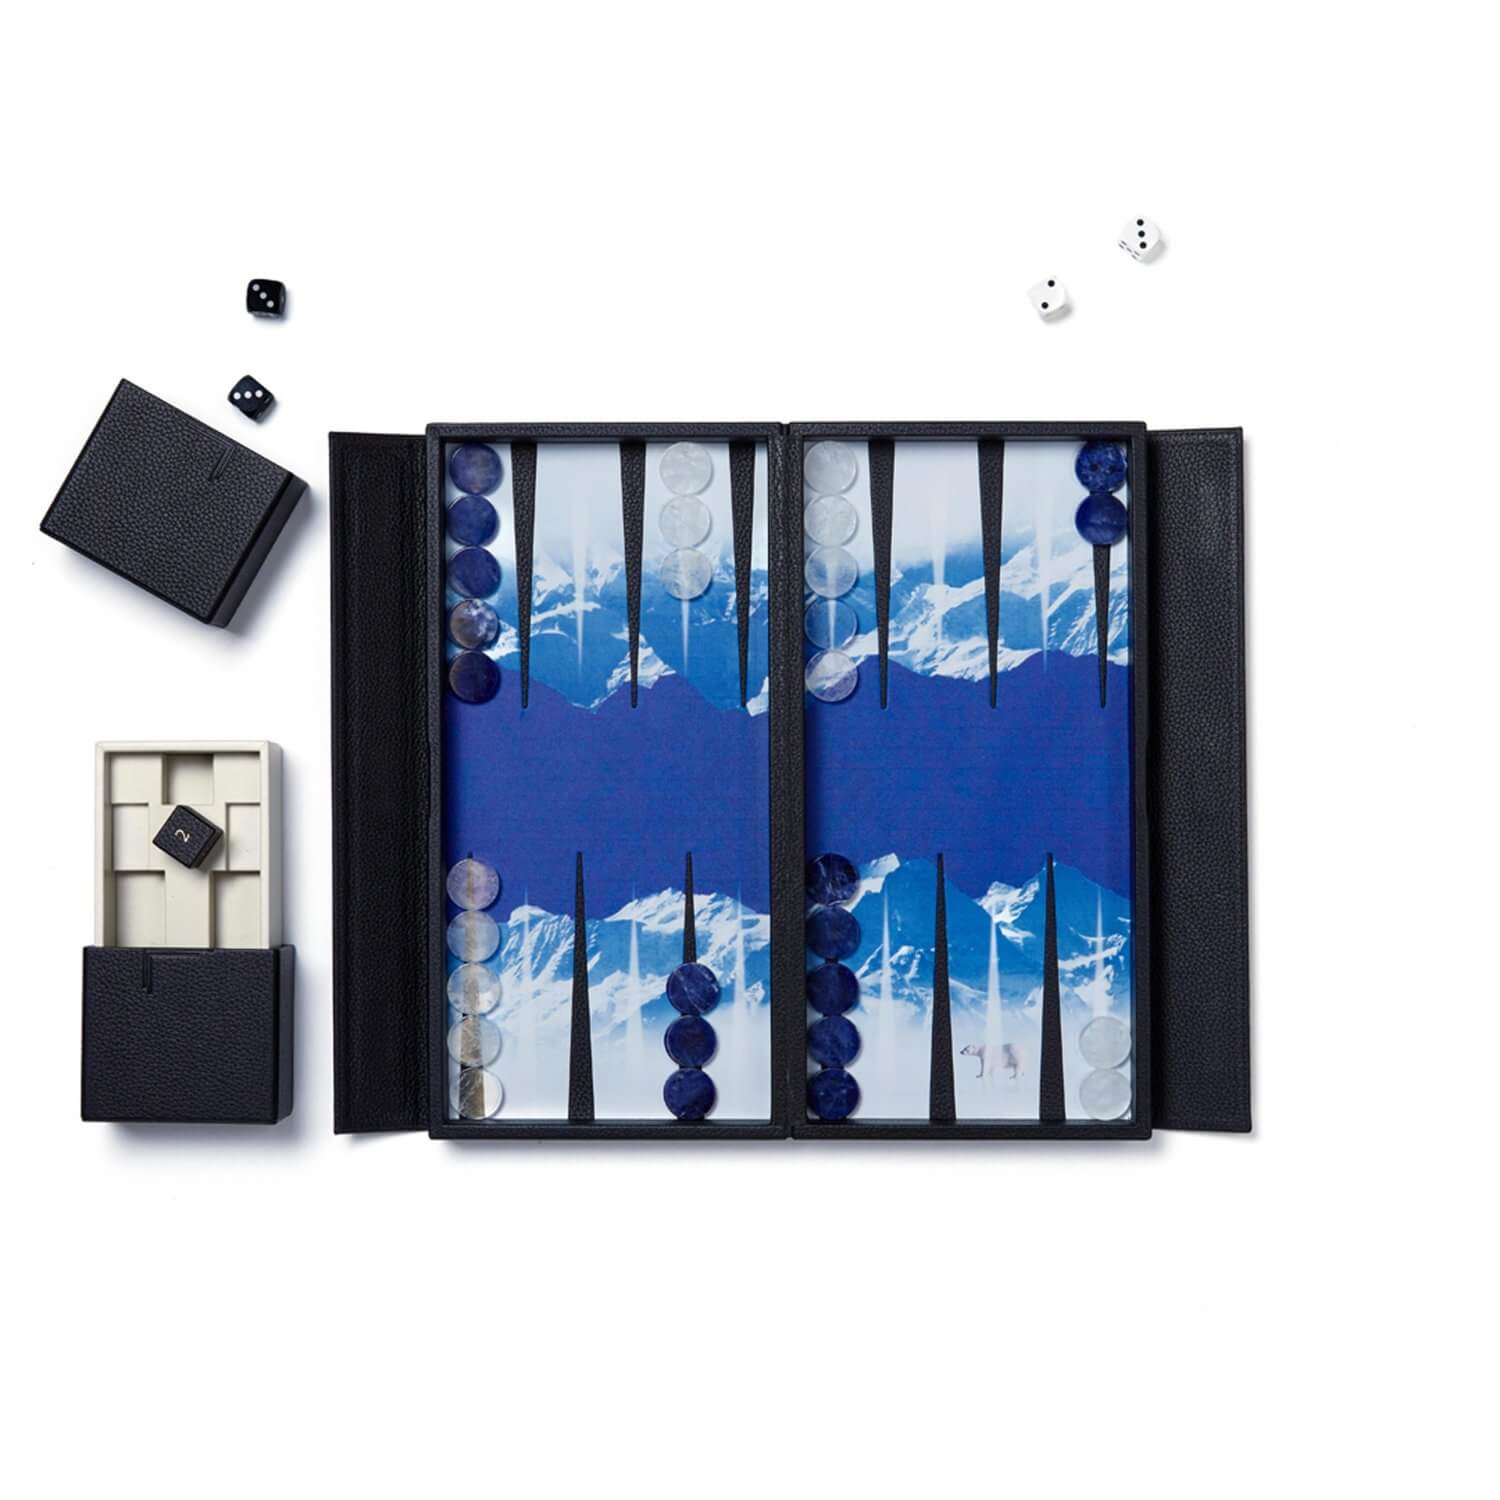 A glacier travel backgammon set with rock crystal and blue sodalite playing pieces